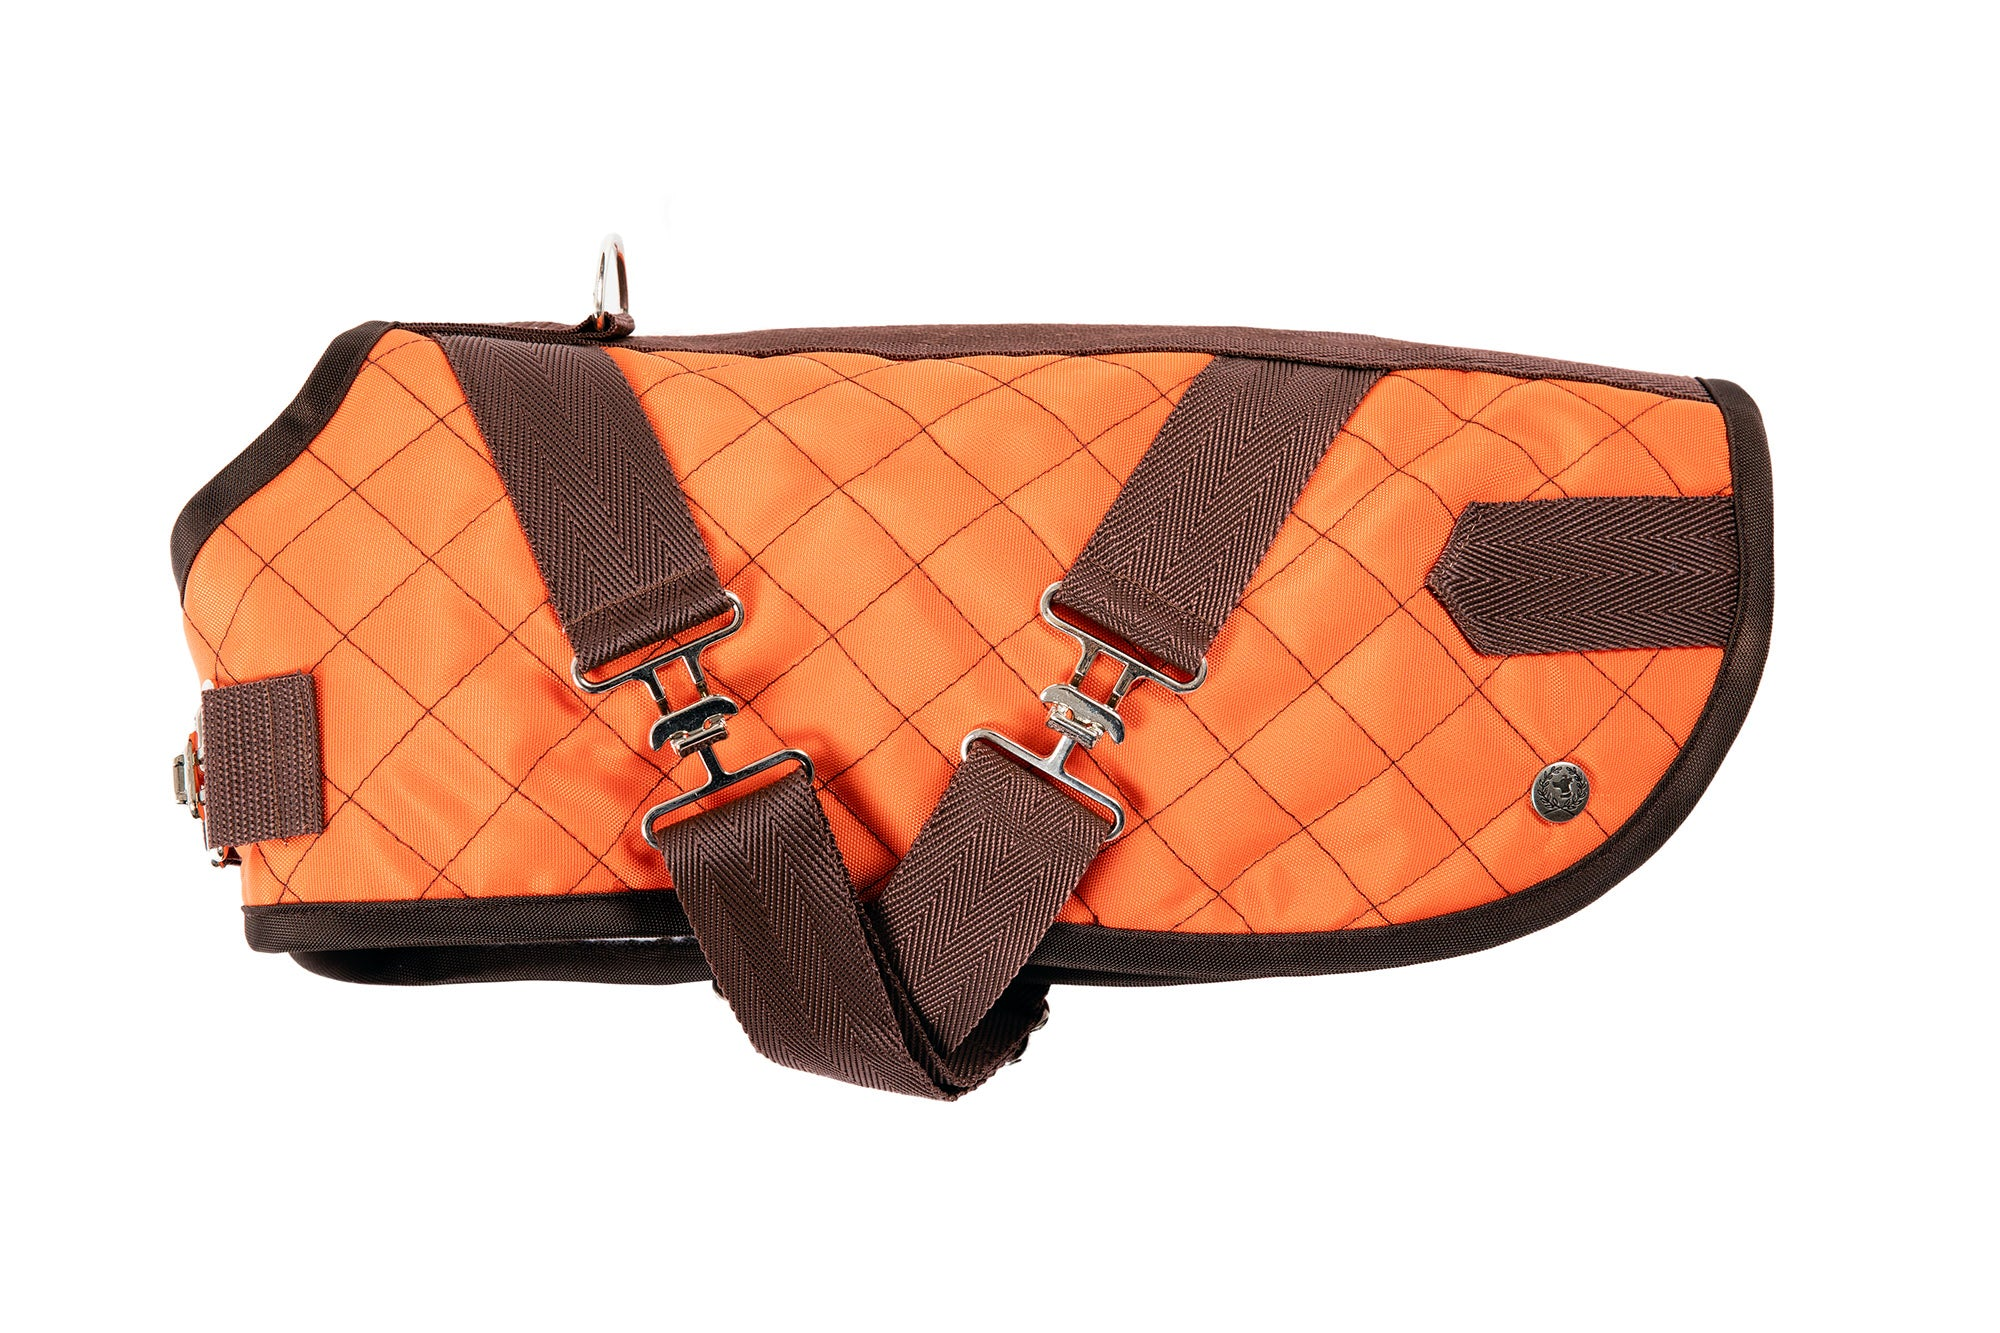 Horse Blanket - Navy Quilted - Brown Quilted - Orange Quilted - 3 Color Options